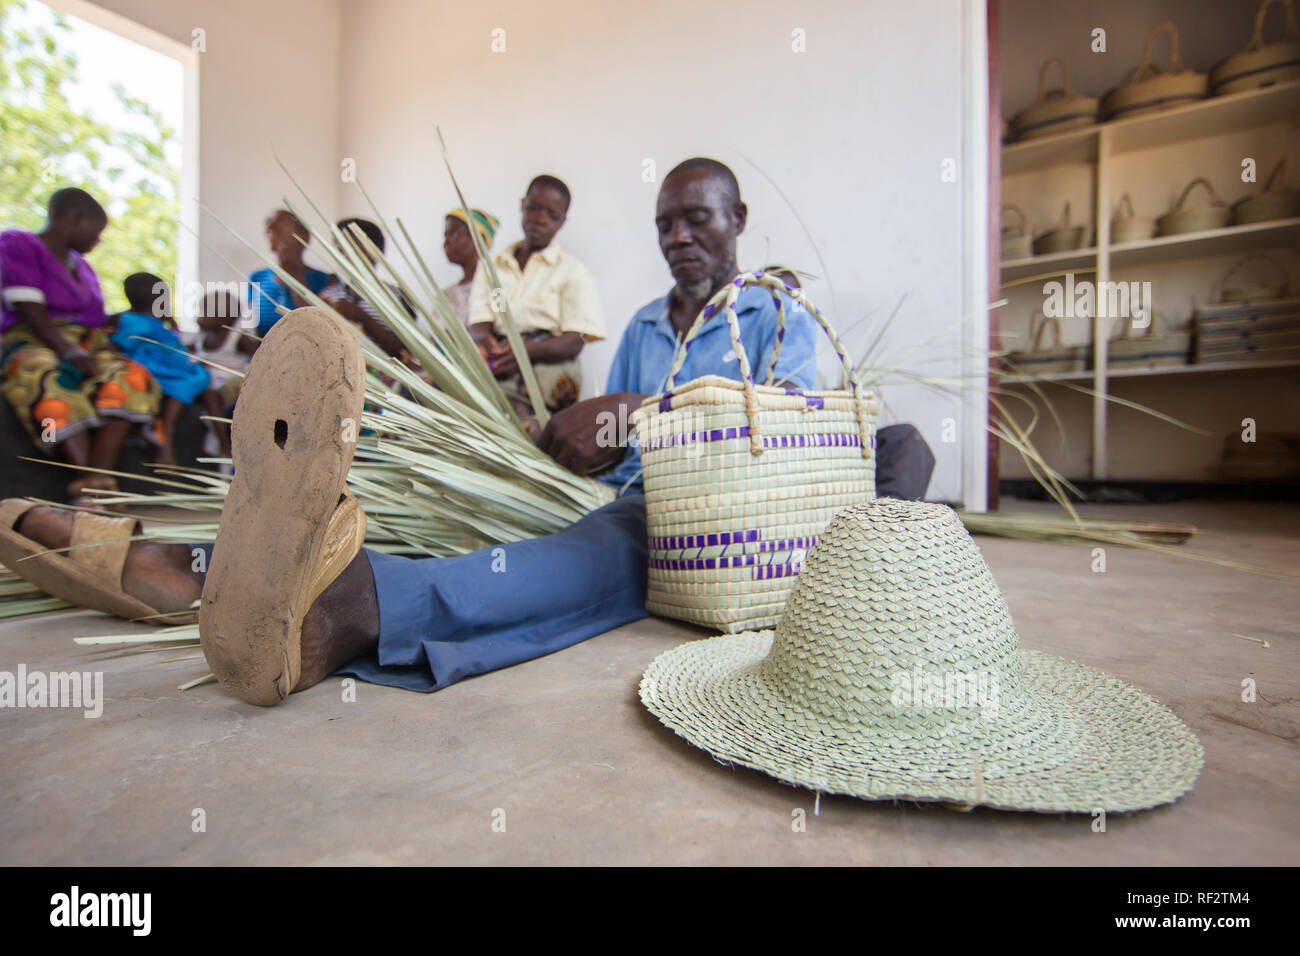 A Malawian man weaves baskets for a community outreach program of Majete Wildlife Reserve, Malawi; Cmmunity members craft souveniers to sell Stock Photo